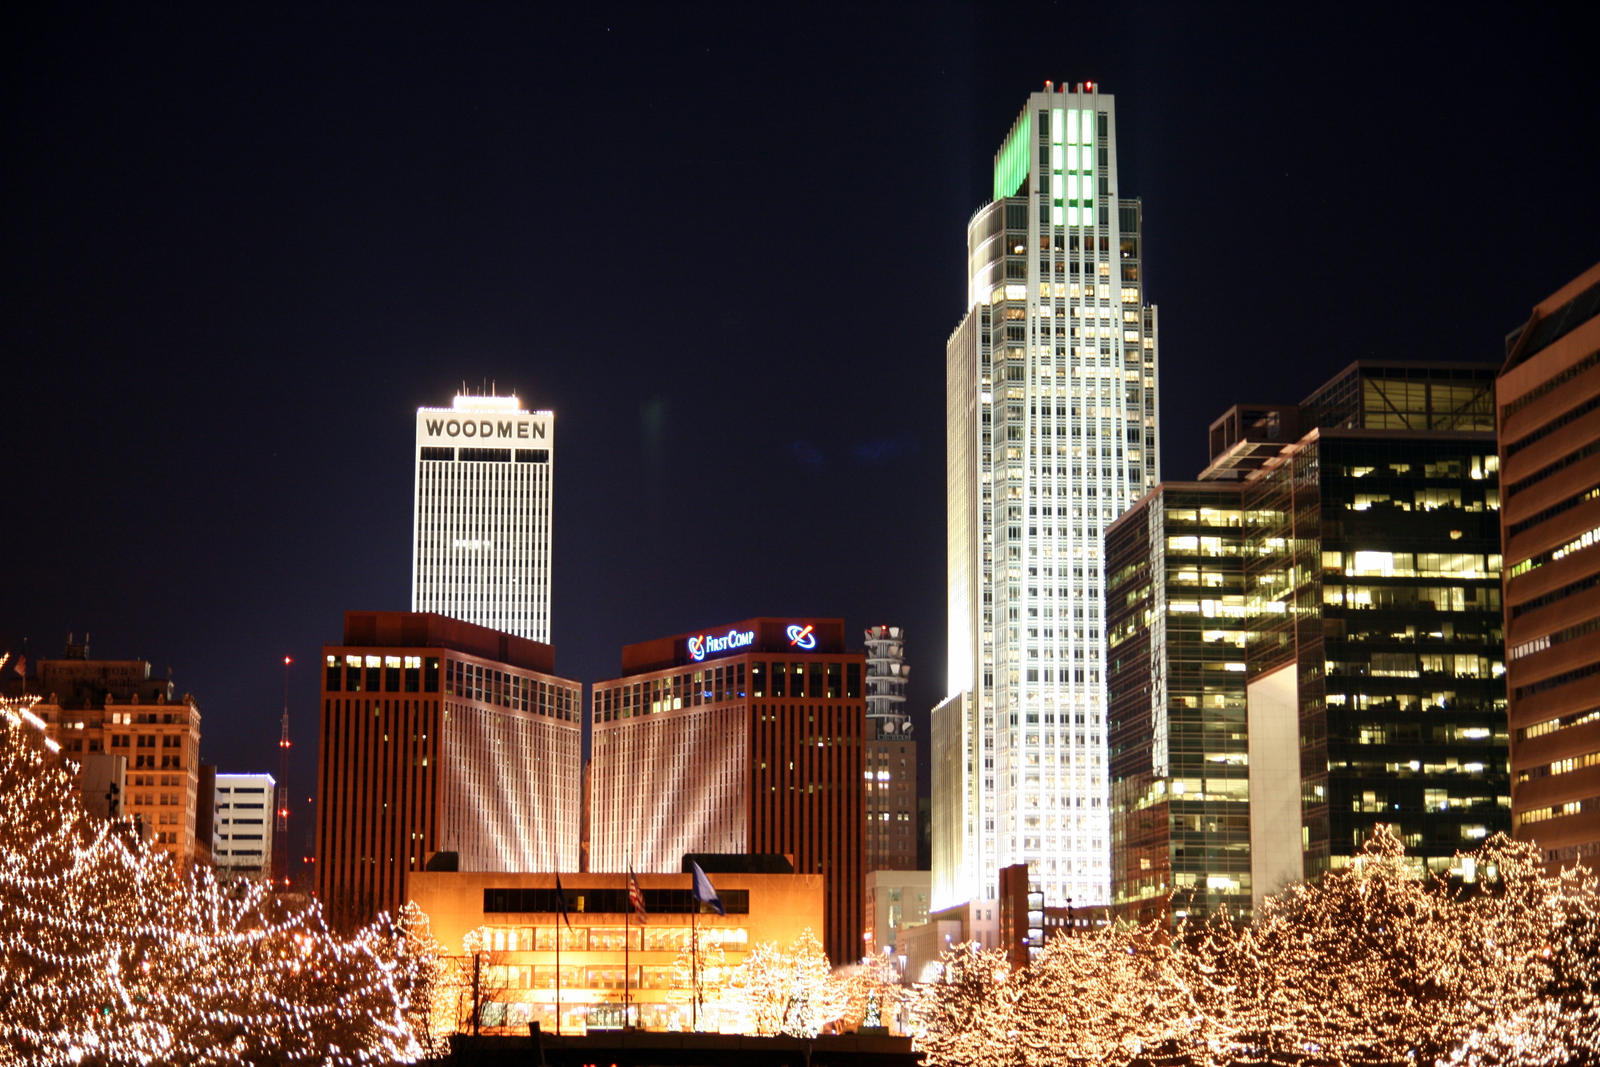 Omaha Christmas Lights 2008 by woberttodd on DeviantArt